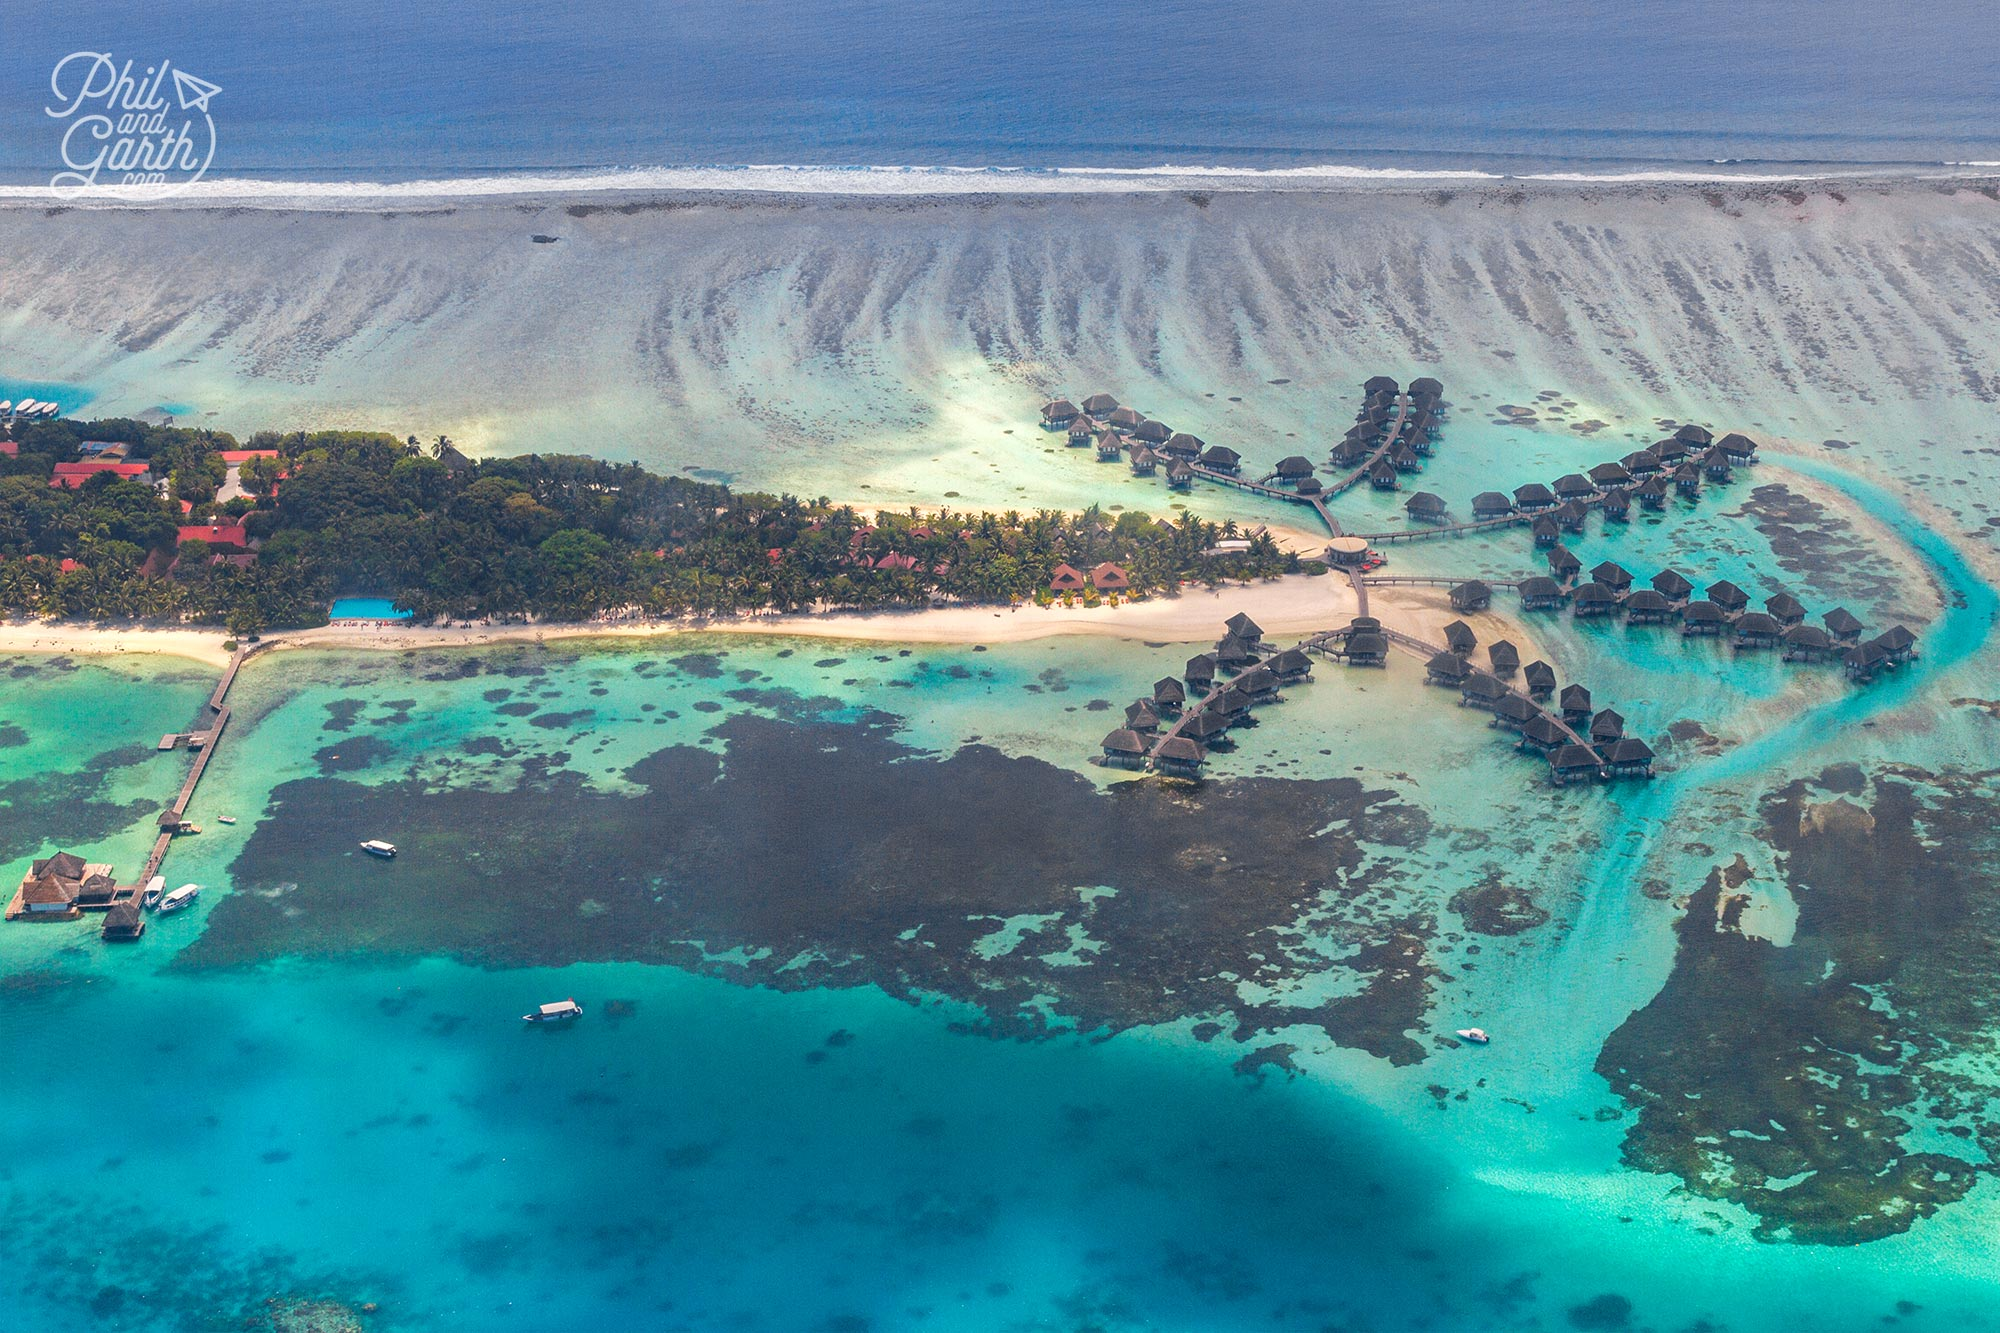 Another amazing looking resort in the Maldives